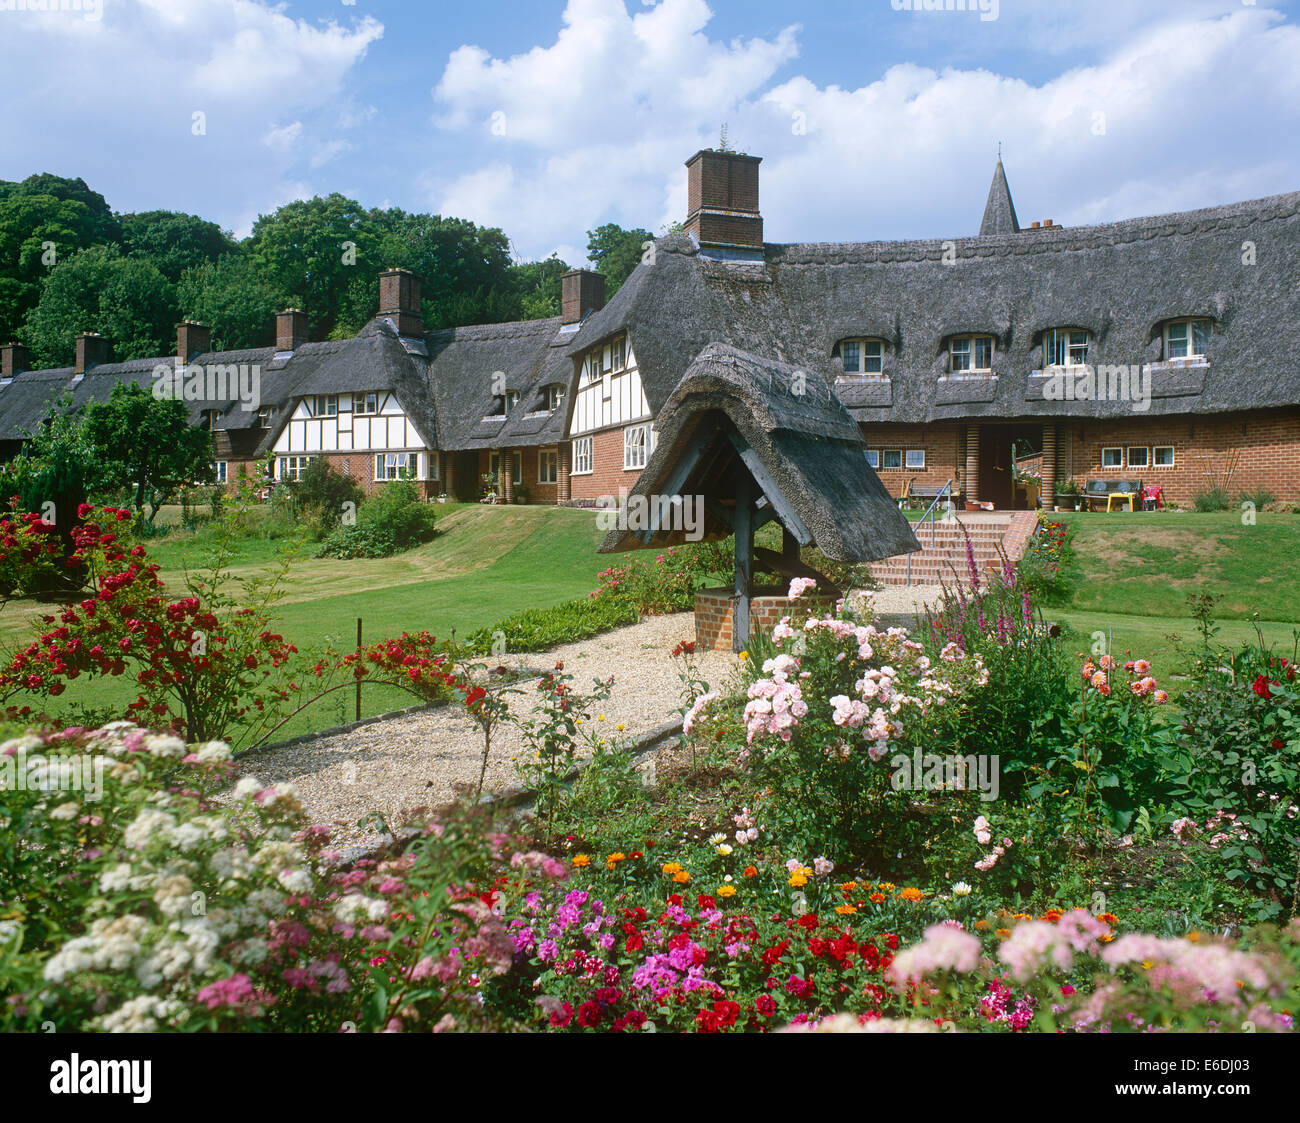 Cottages Freefolk Hampshire UK - Stock Image